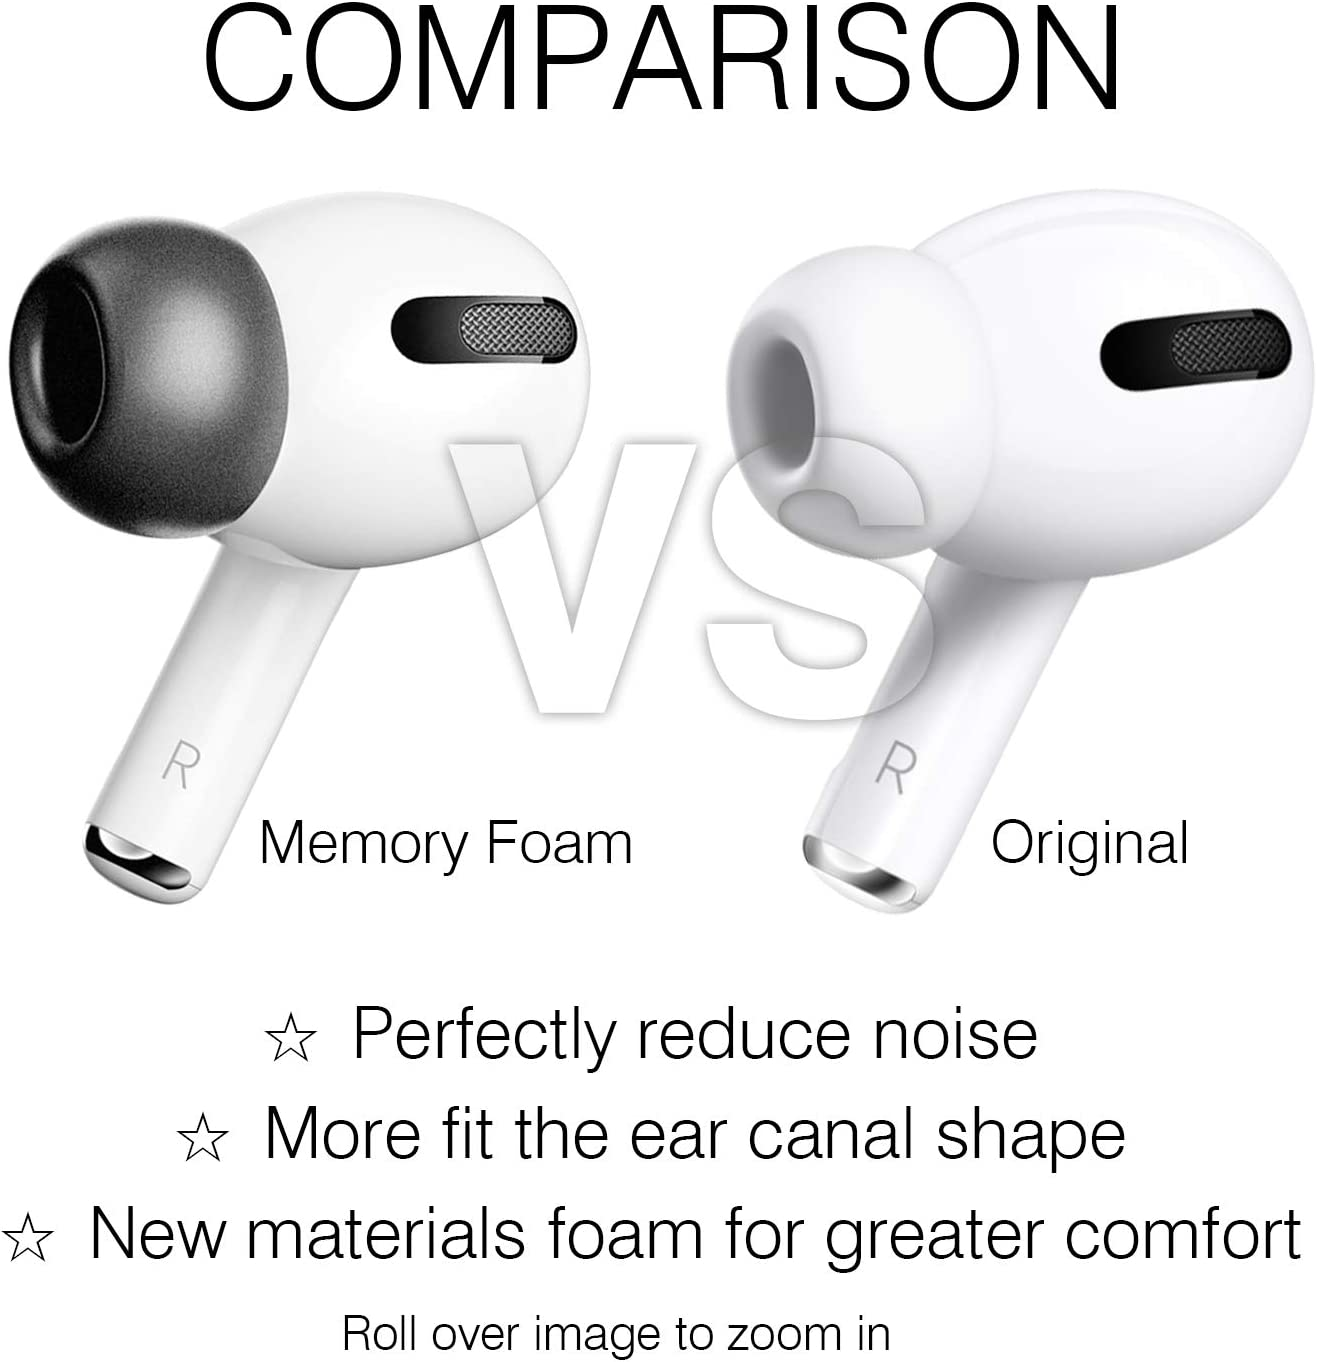 BENPAO Airpods Pro Ear Tips Black Non-Slip Soft Protective Ear Hooks Compatible with Airpods Pro//Airpods 3 2 Pairs Memory Foam Earbuds Airpods 3 Covers